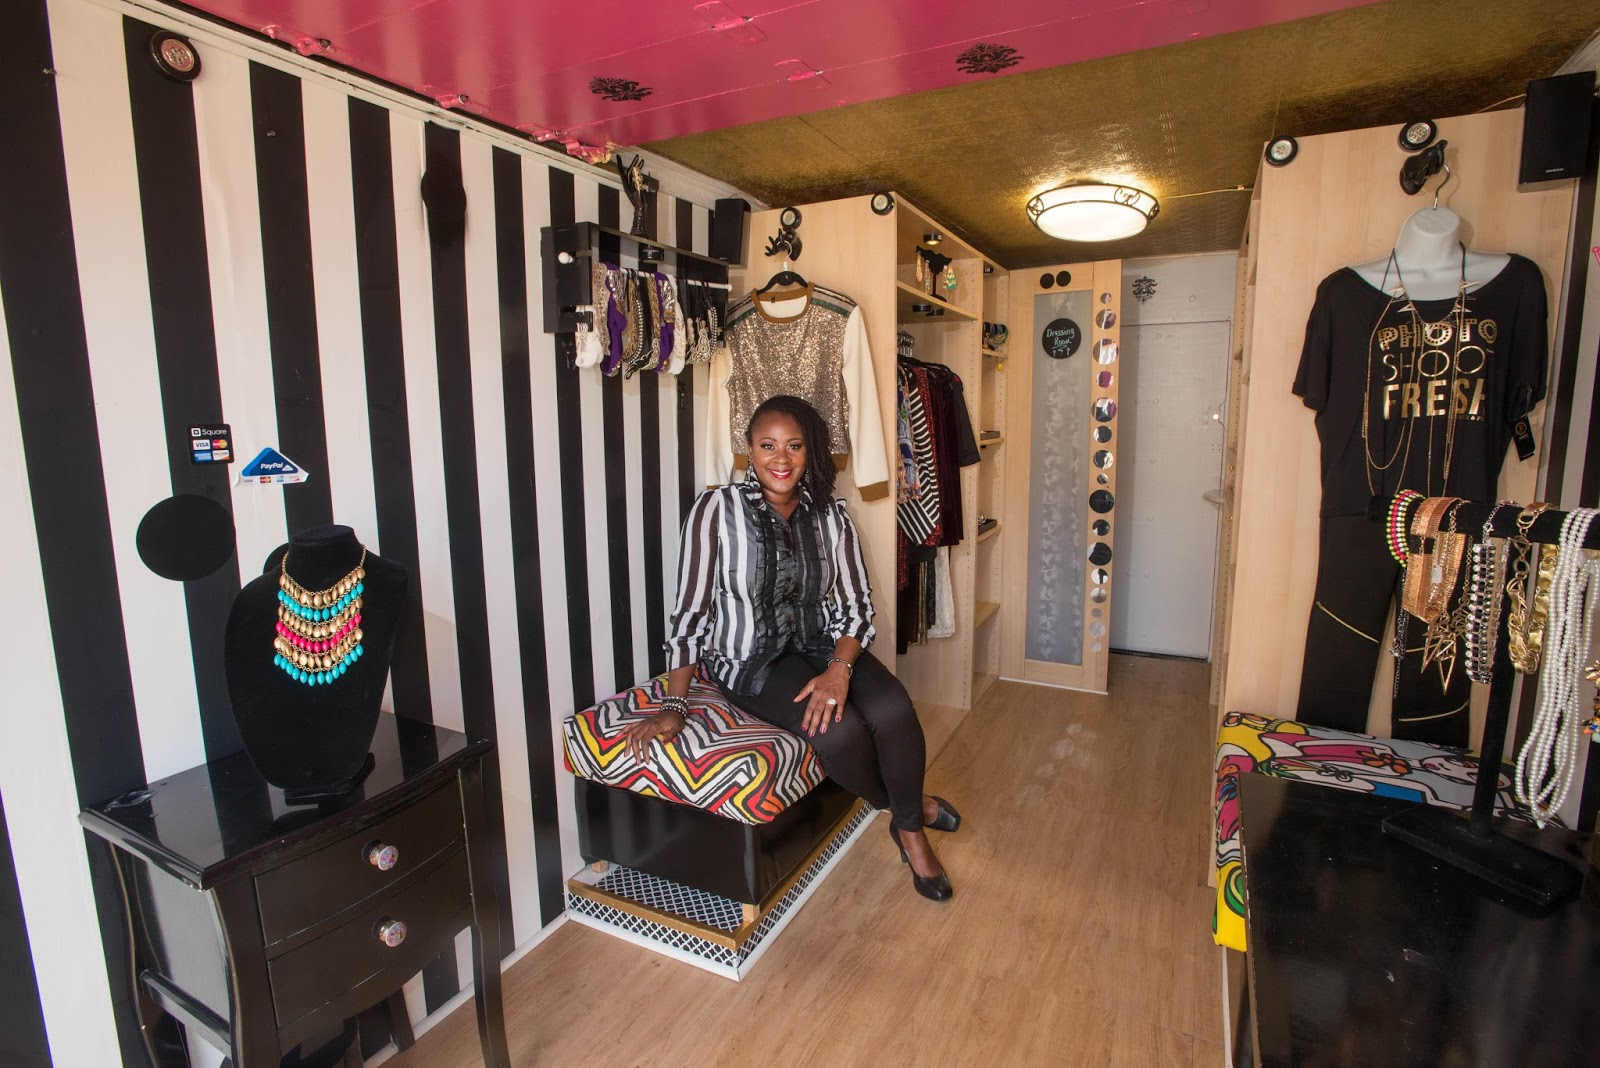 American Mobile Retail Association  July 2017     tour the CJKollective Fashion Boutique  pictured above   a mobile  boutique filled with on trend women s clothing and accessories  plush  seating  music